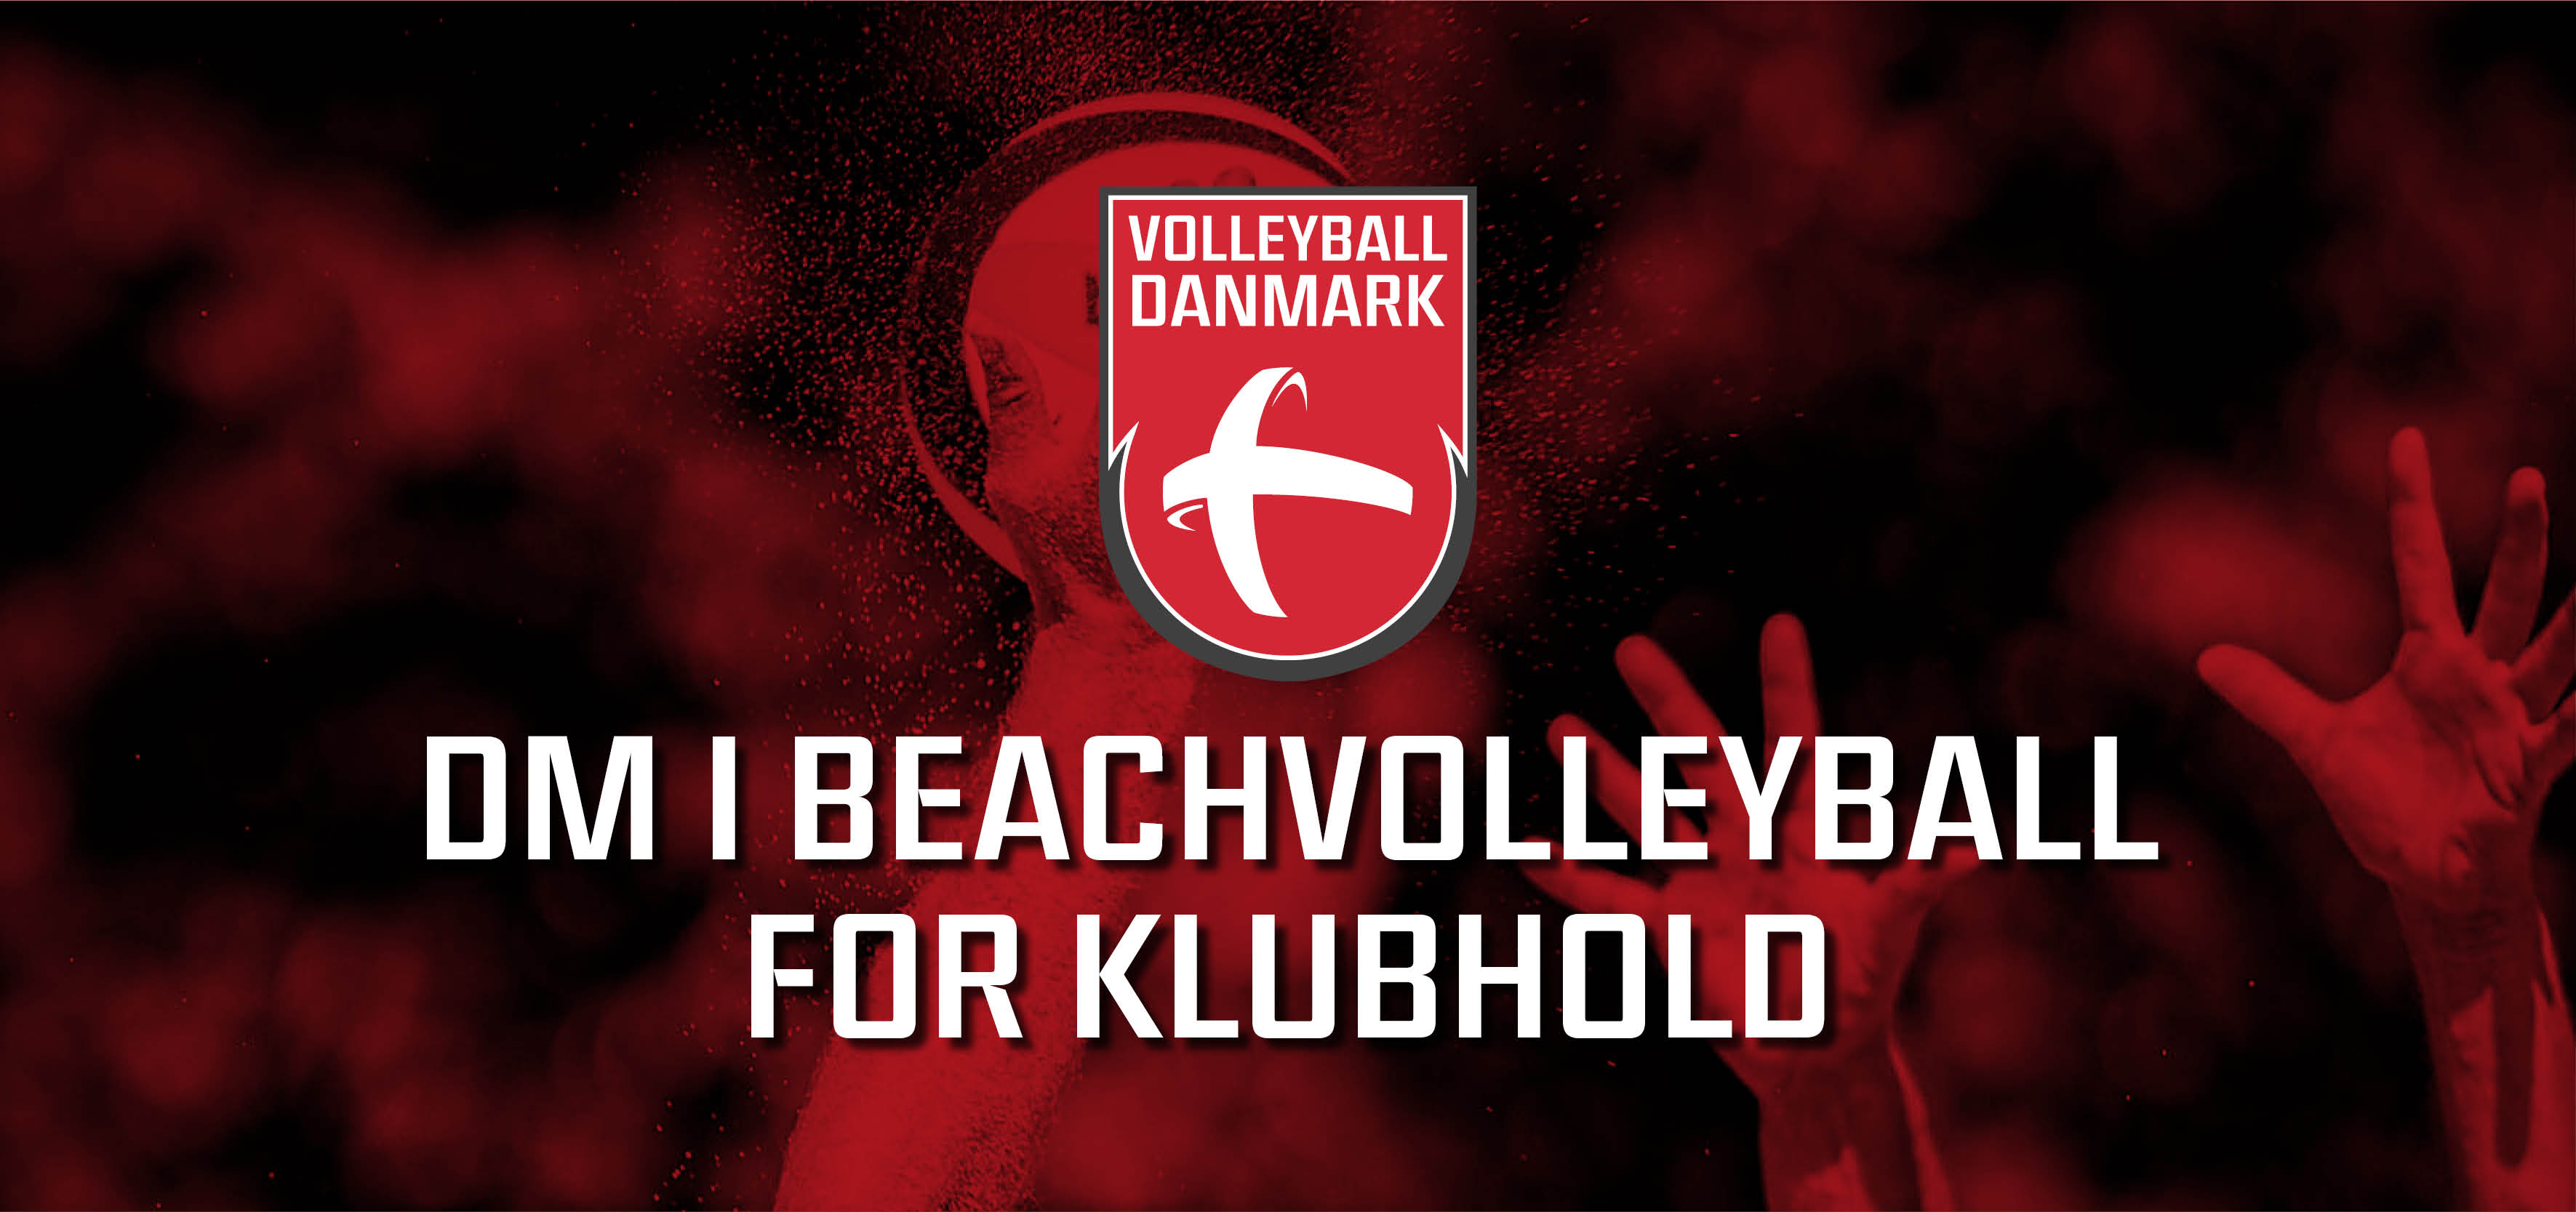 Volleyball Danmark lancerer ny turnering: DM i beachvolleyball for klubhold